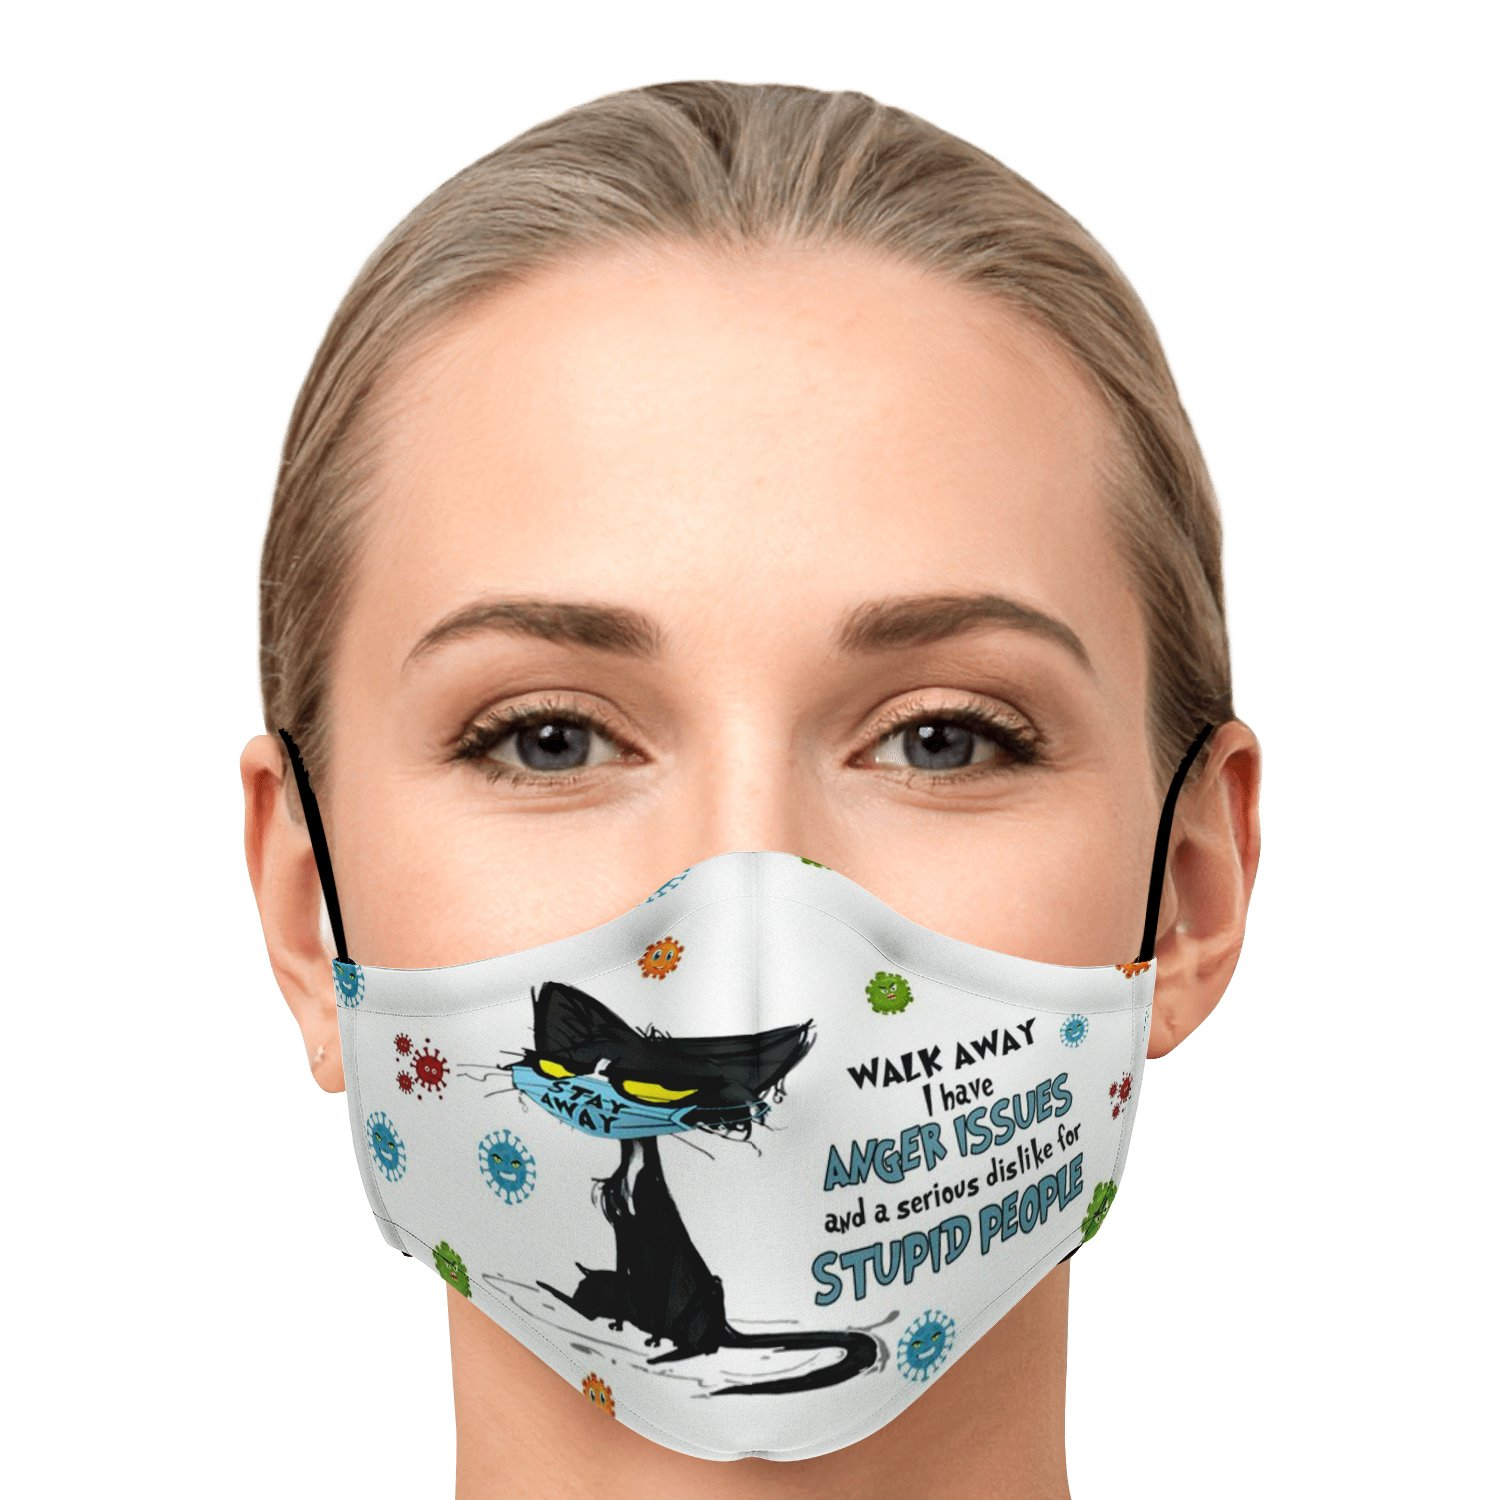 Walk Away Stupid People Black Cat Face Mask 1